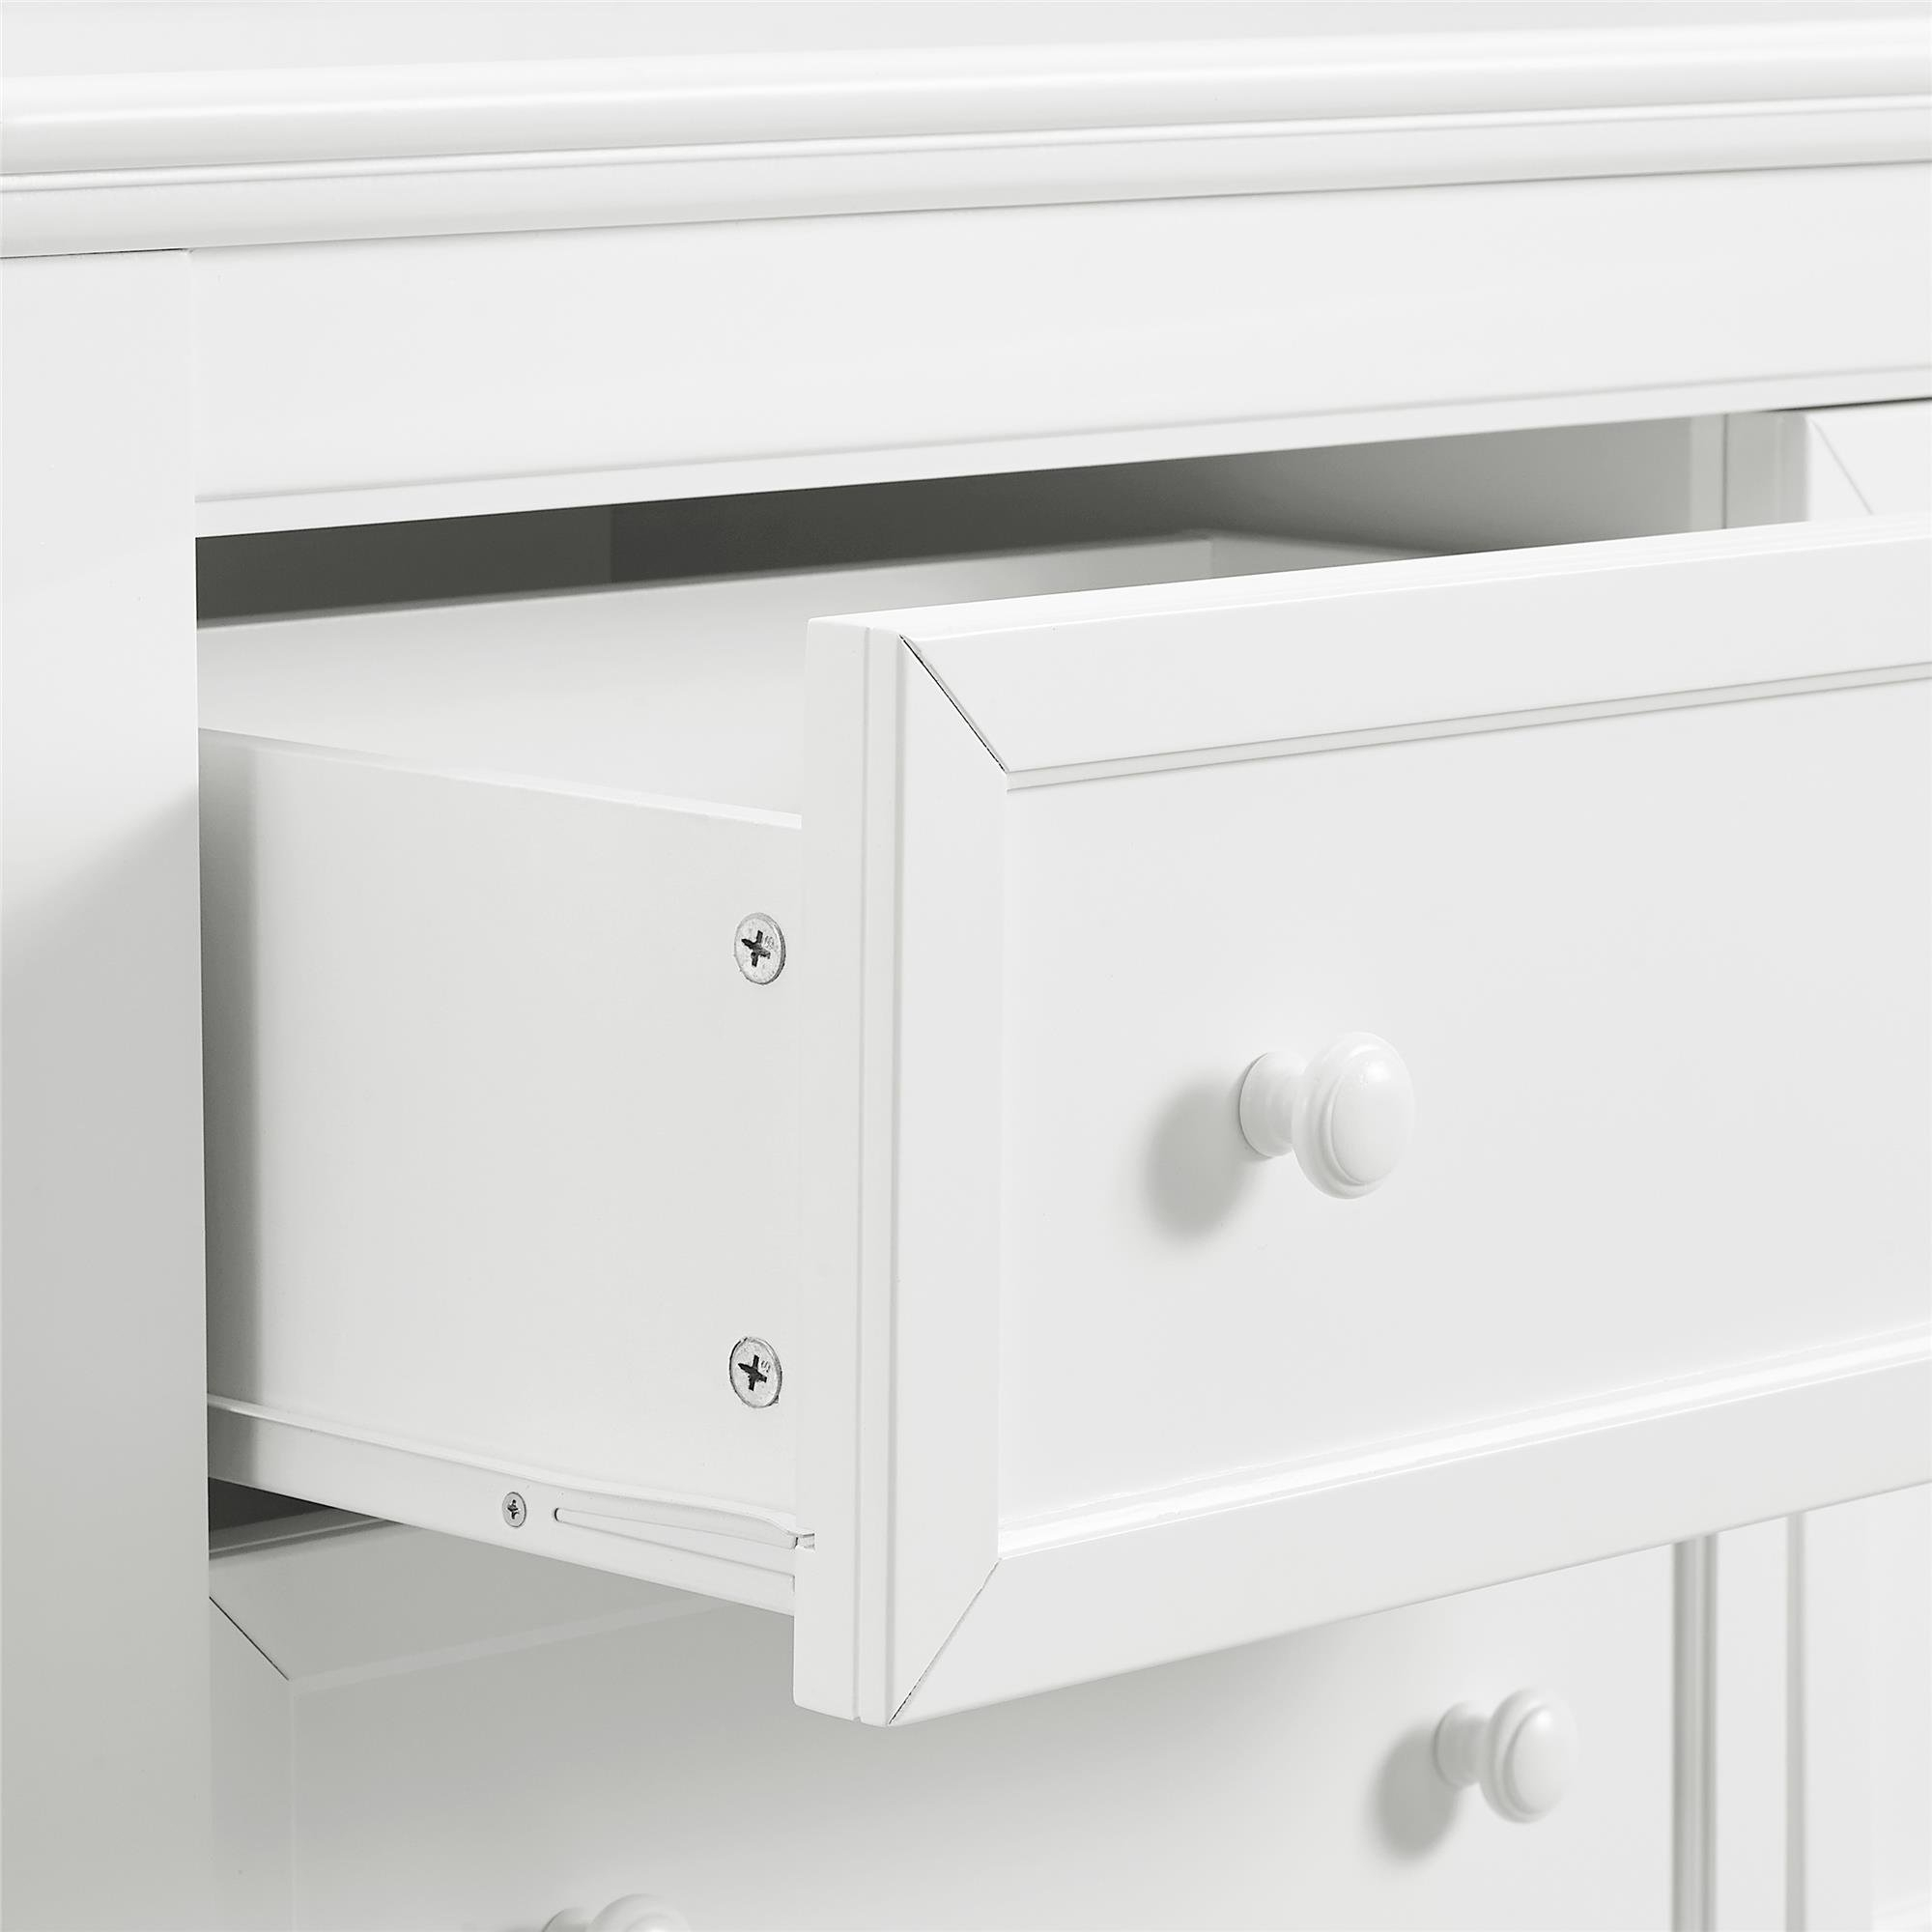 Sideboard Extra Lang. Door Drawer Sideboard With Sideboard Extra inside Jigsaw Refinement Sideboards (Image 14 of 30)